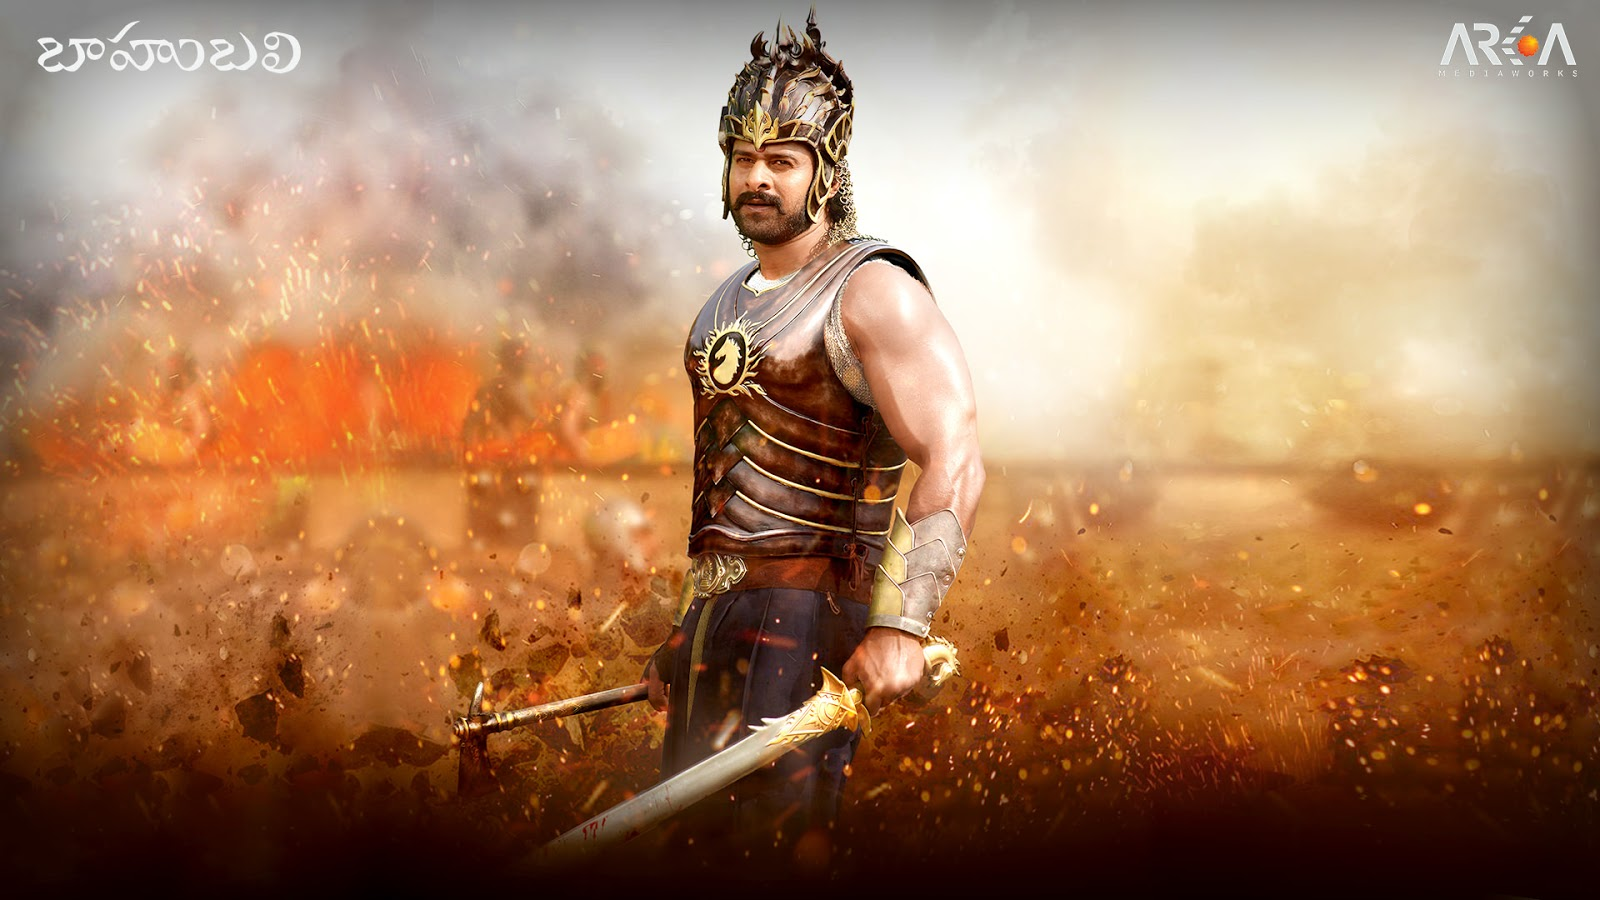 Baahubali Movie New HD Posters And Wallpapers